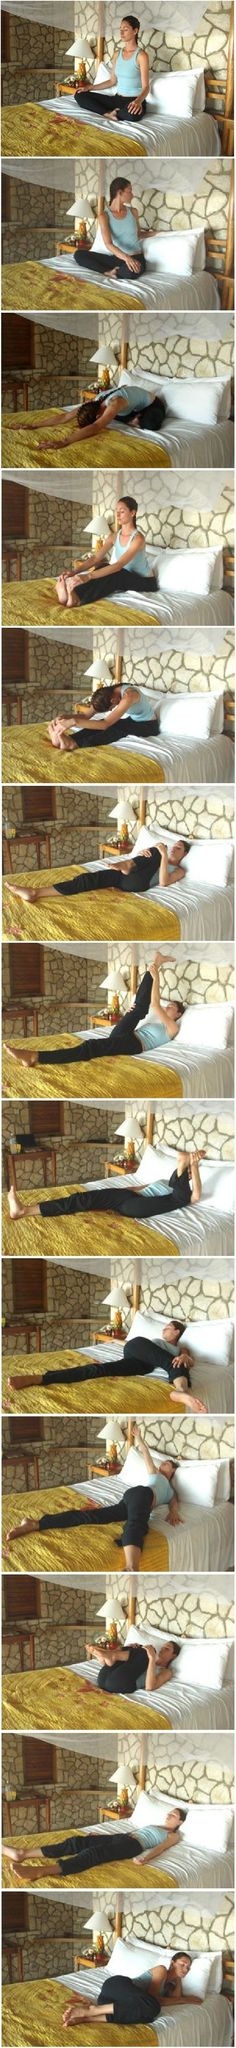 This is really the best pin of this bedtime yoga routine, with all the pictures in a row instead of at different pages! Btw, it totally helps you sleep better! Bedtime Yoga from Fitness Del Yoga, Health Fitness, Women's Fitness, Fitness Apparel, Fitness Tracker, Vinyasa Yoga, Yoga Sequences, Yoga Poses, Yoga Inspiration